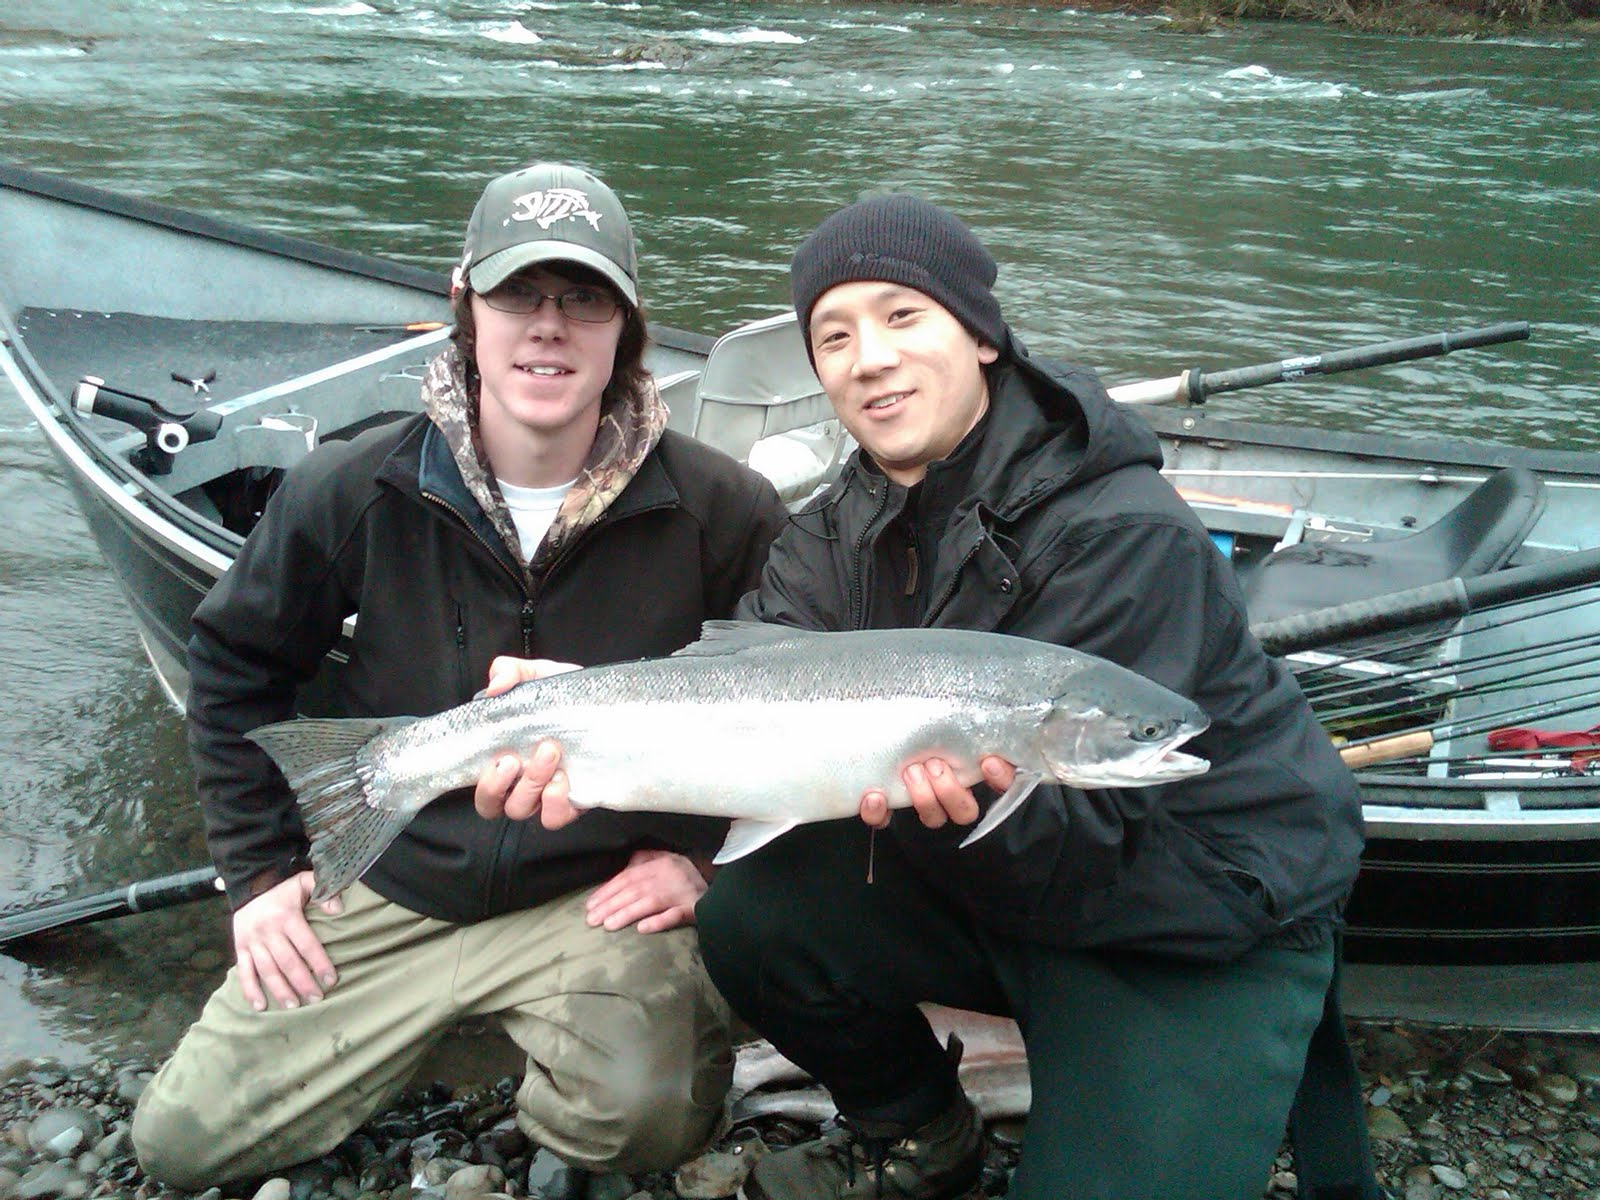 Forks fishing guide jason ray a beautiful winter day on for Sol duc river fishing